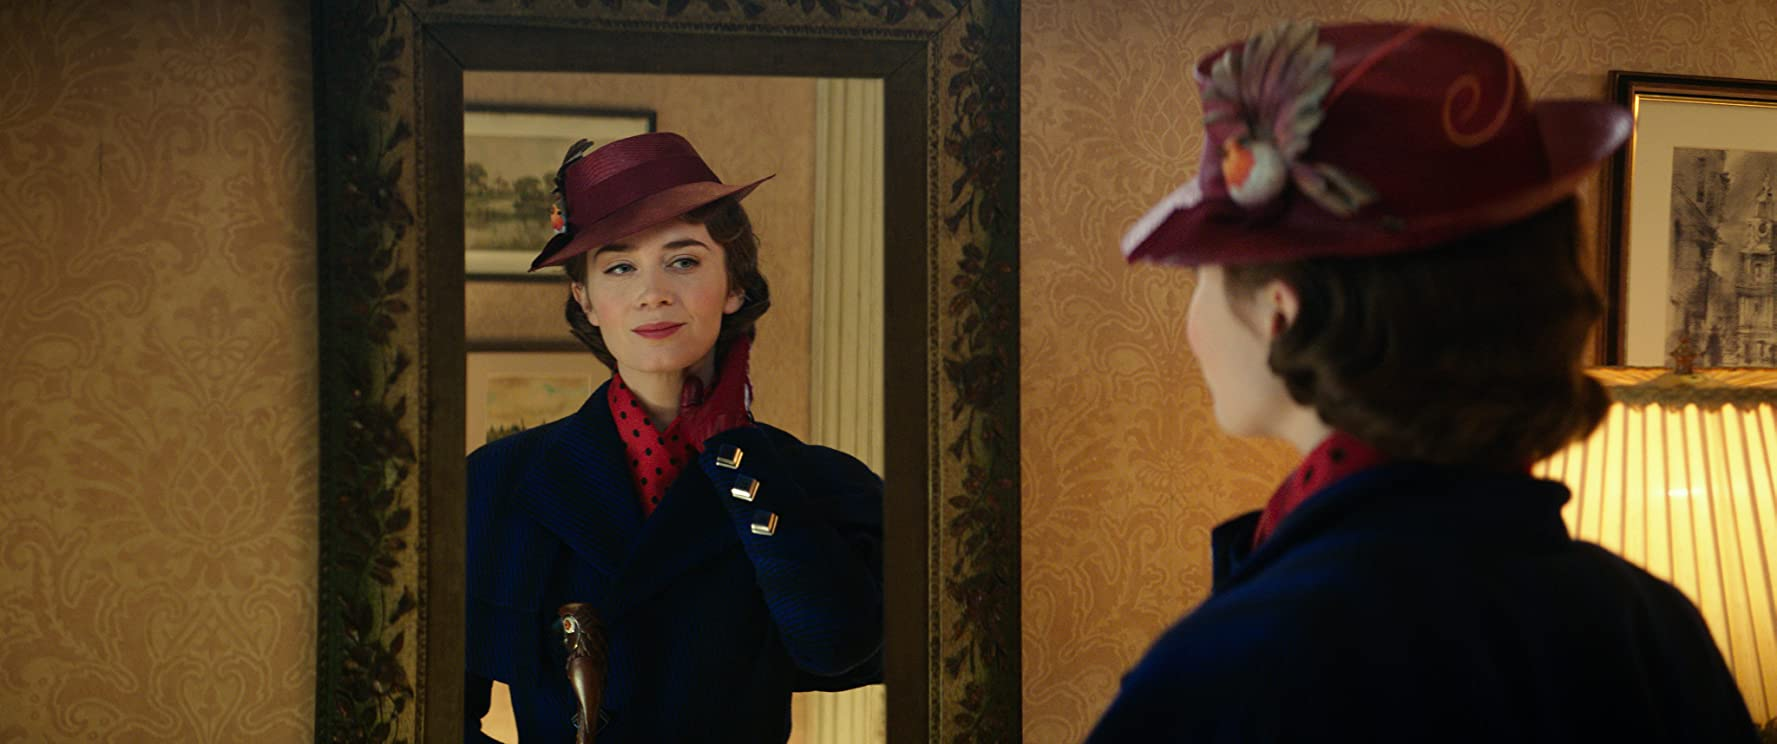 Mary Poppins: The Story Continues!